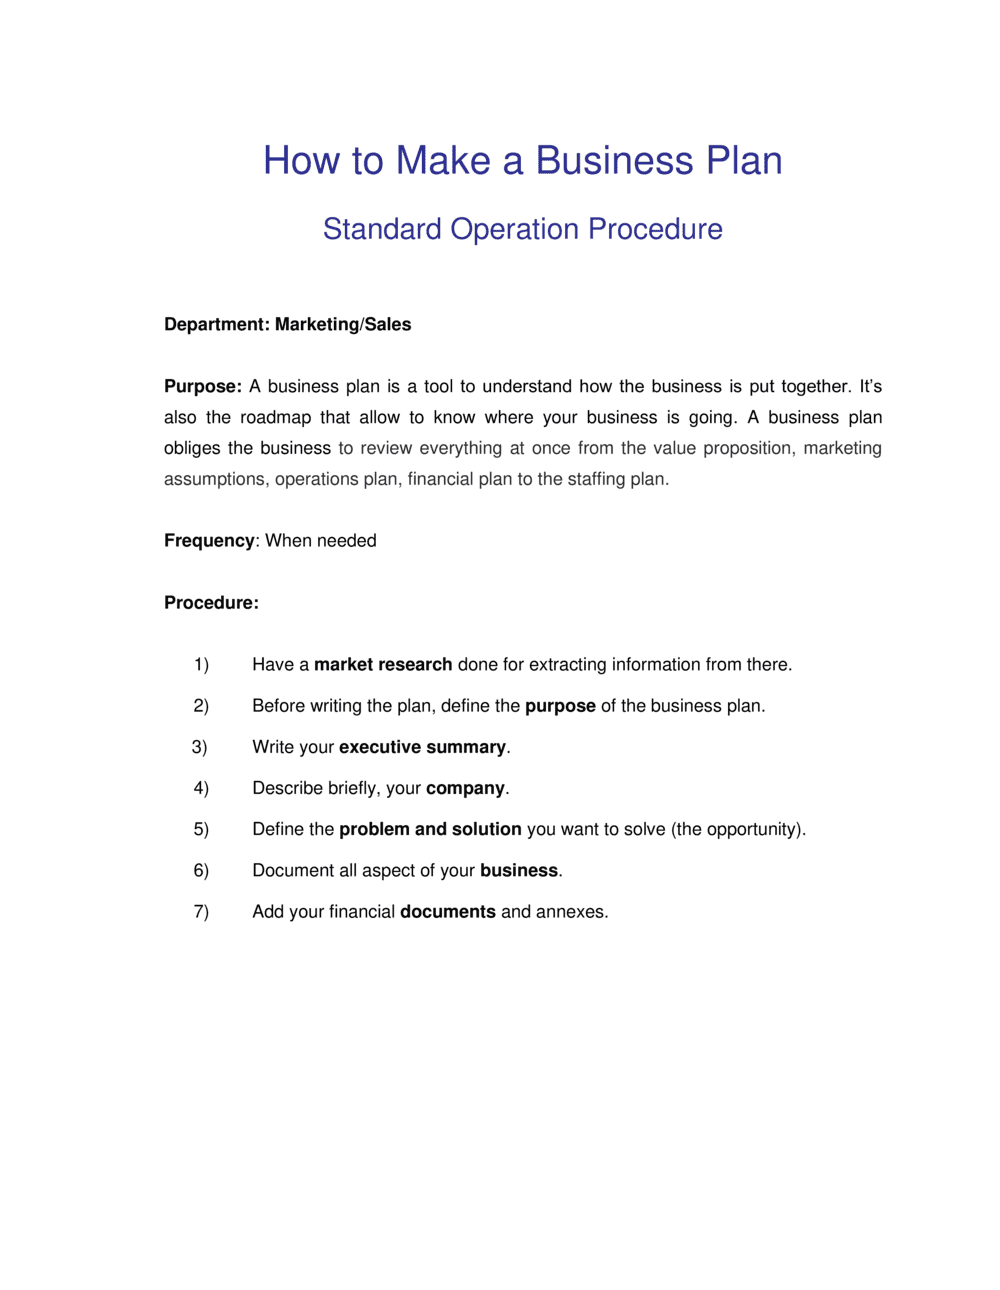 Business-in-a-Box's How to Make a Business Plan Template